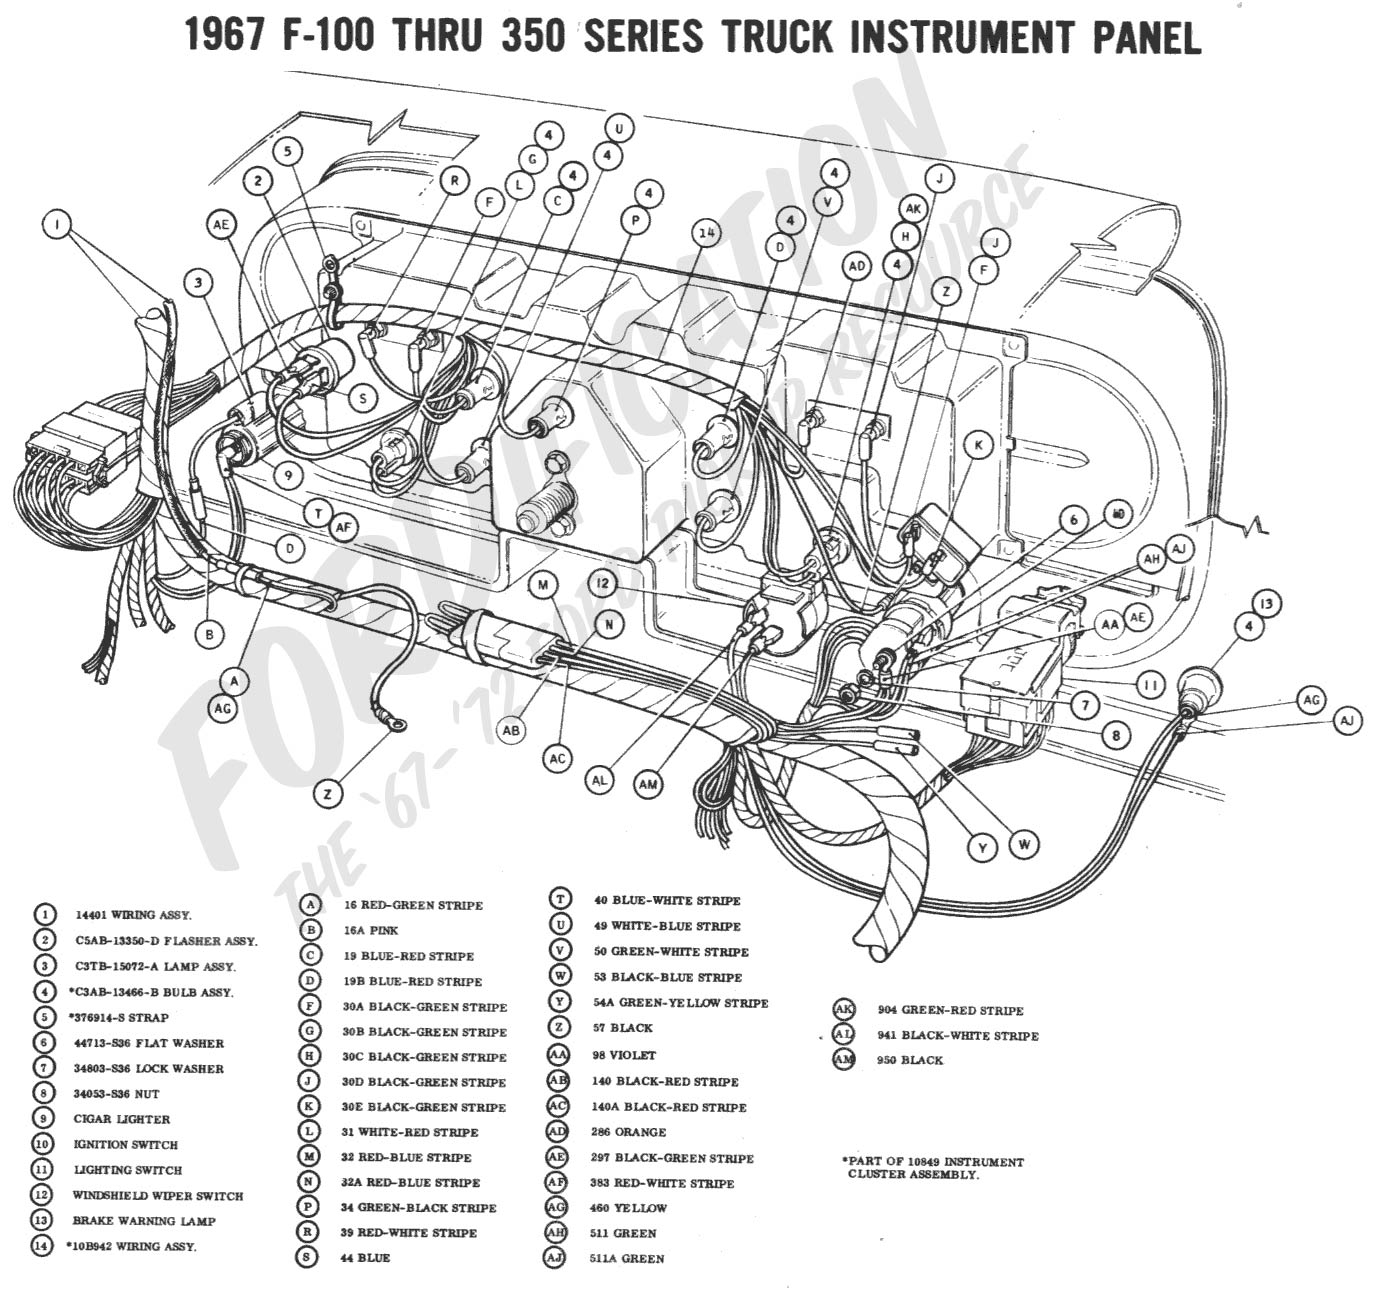 wiring 1967instrumentpanel ford truck technical drawings and schematics section h wiring engine wiring diagram 1967 mustang v8 at mifinder.co